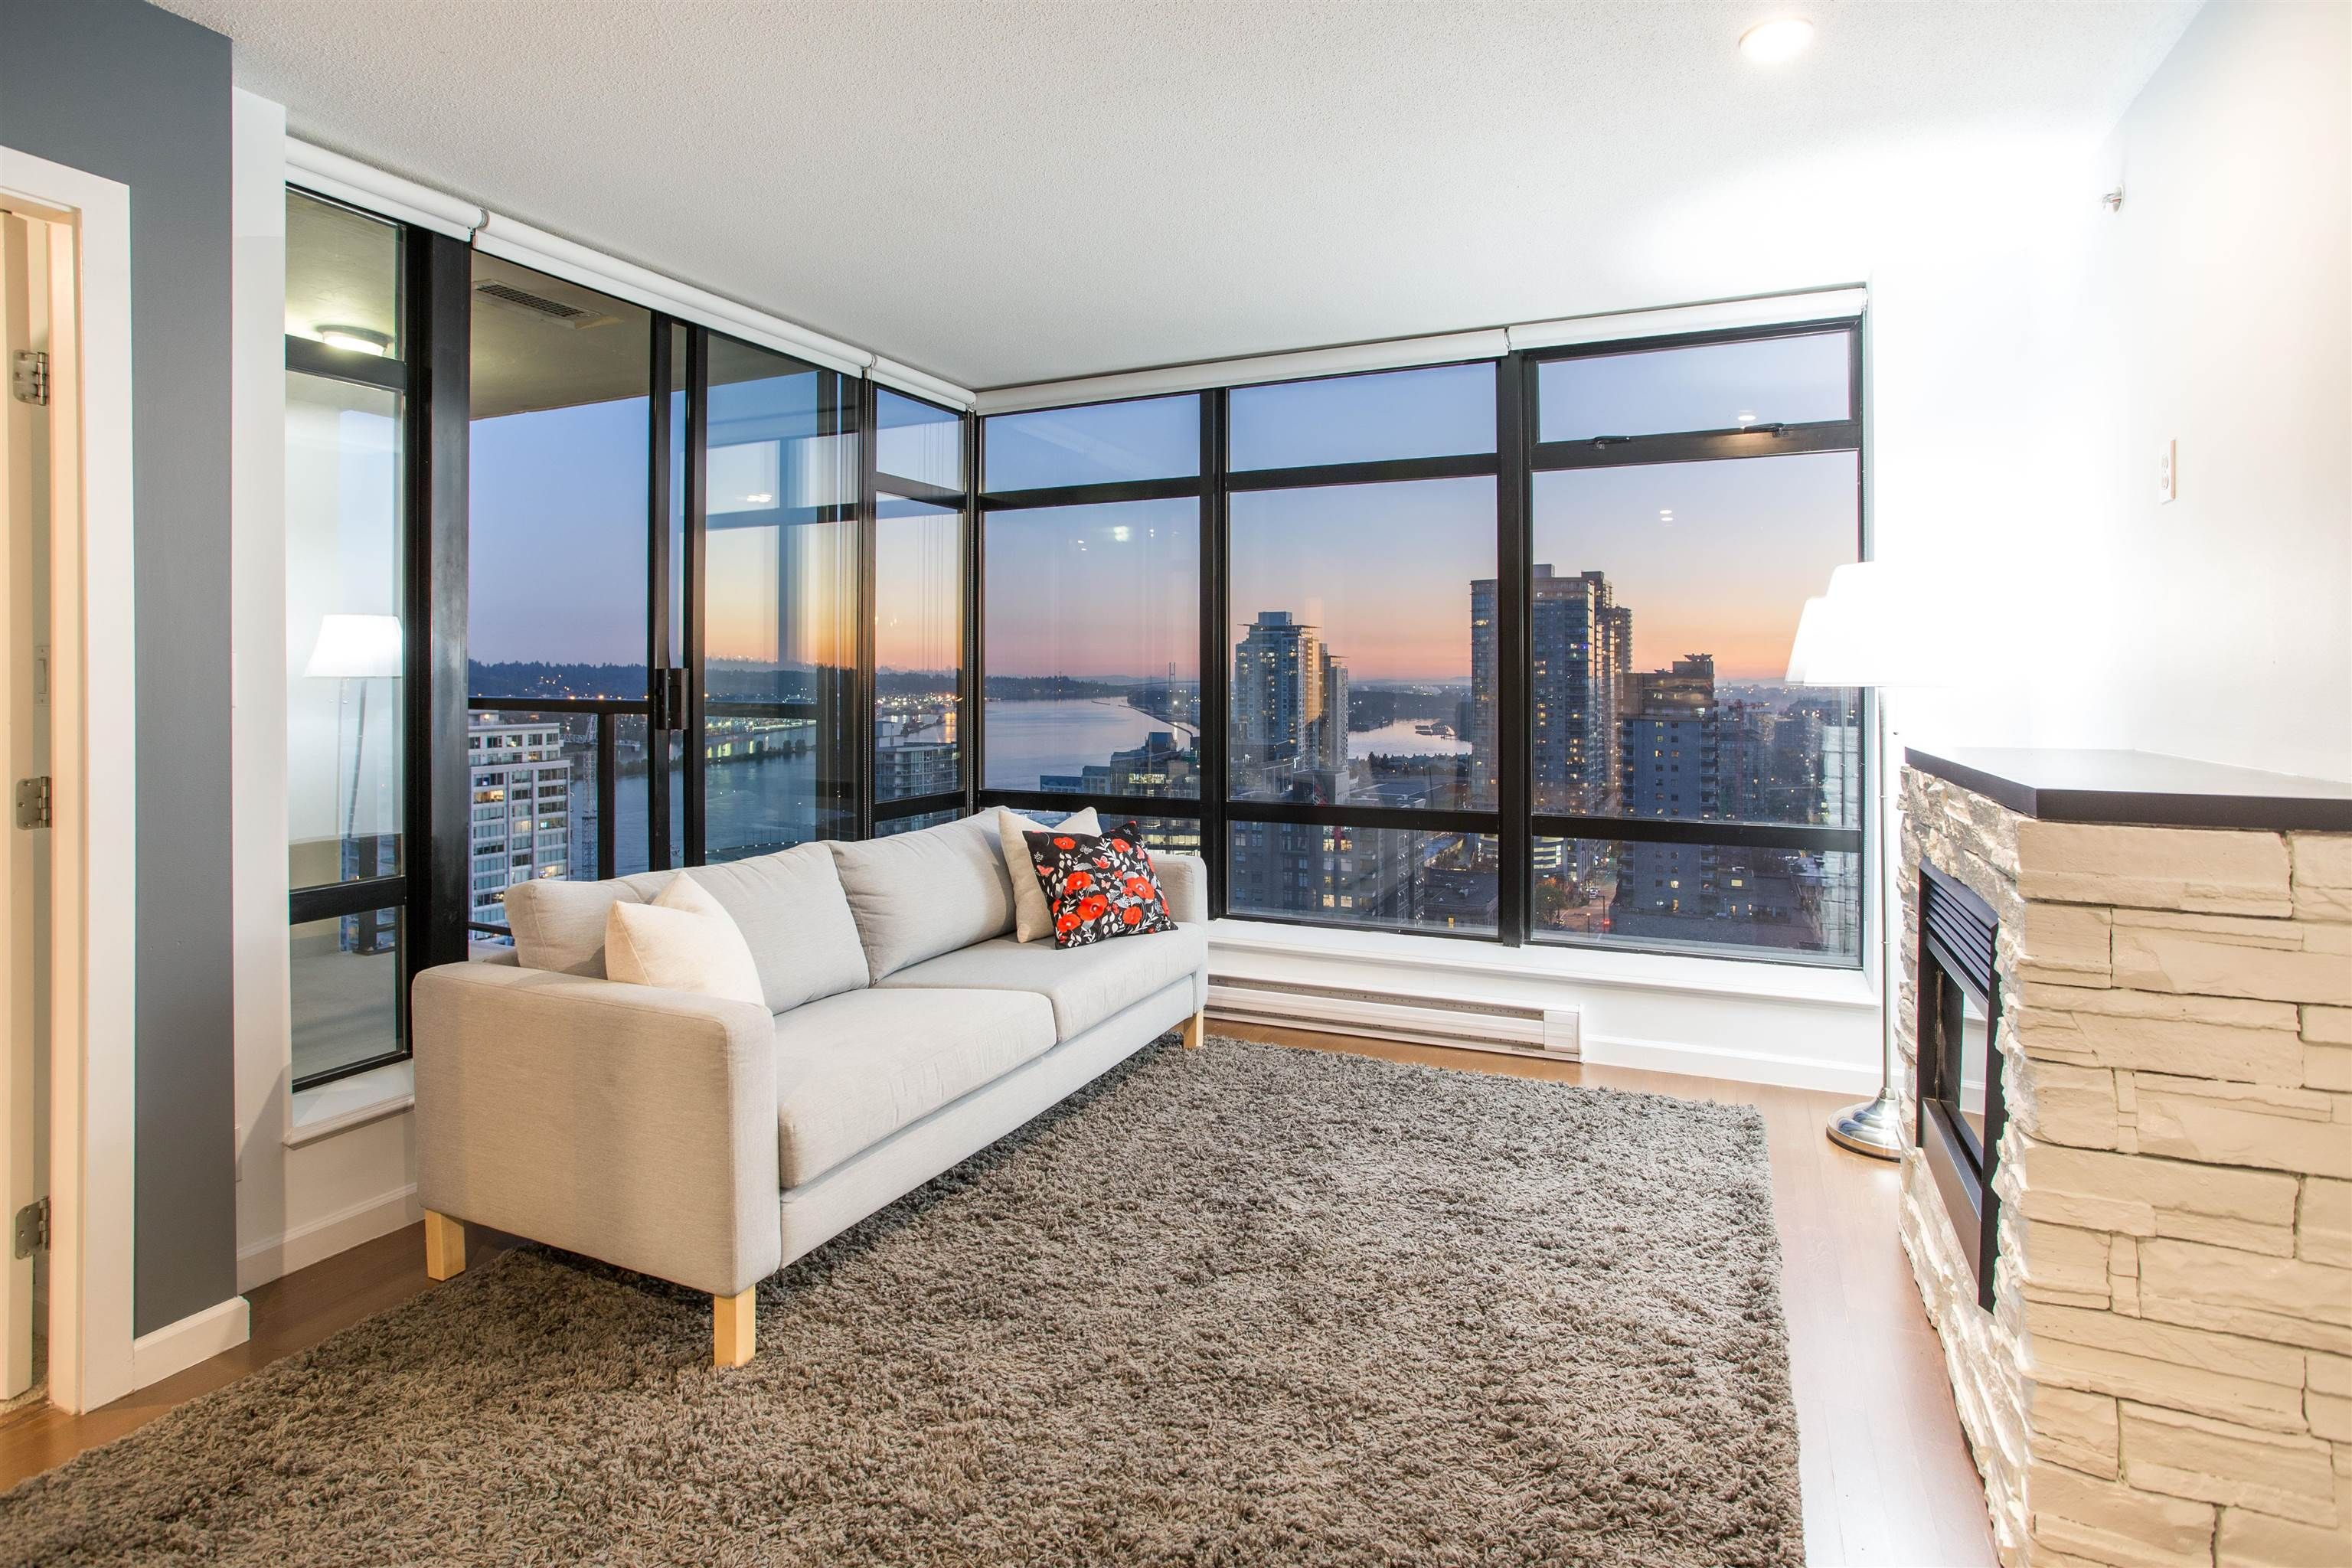 """Main Photo: 1703 610 VICTORIA Street in New Westminster: Downtown NW Condo for sale in """"The Point"""" : MLS®# R2622043"""